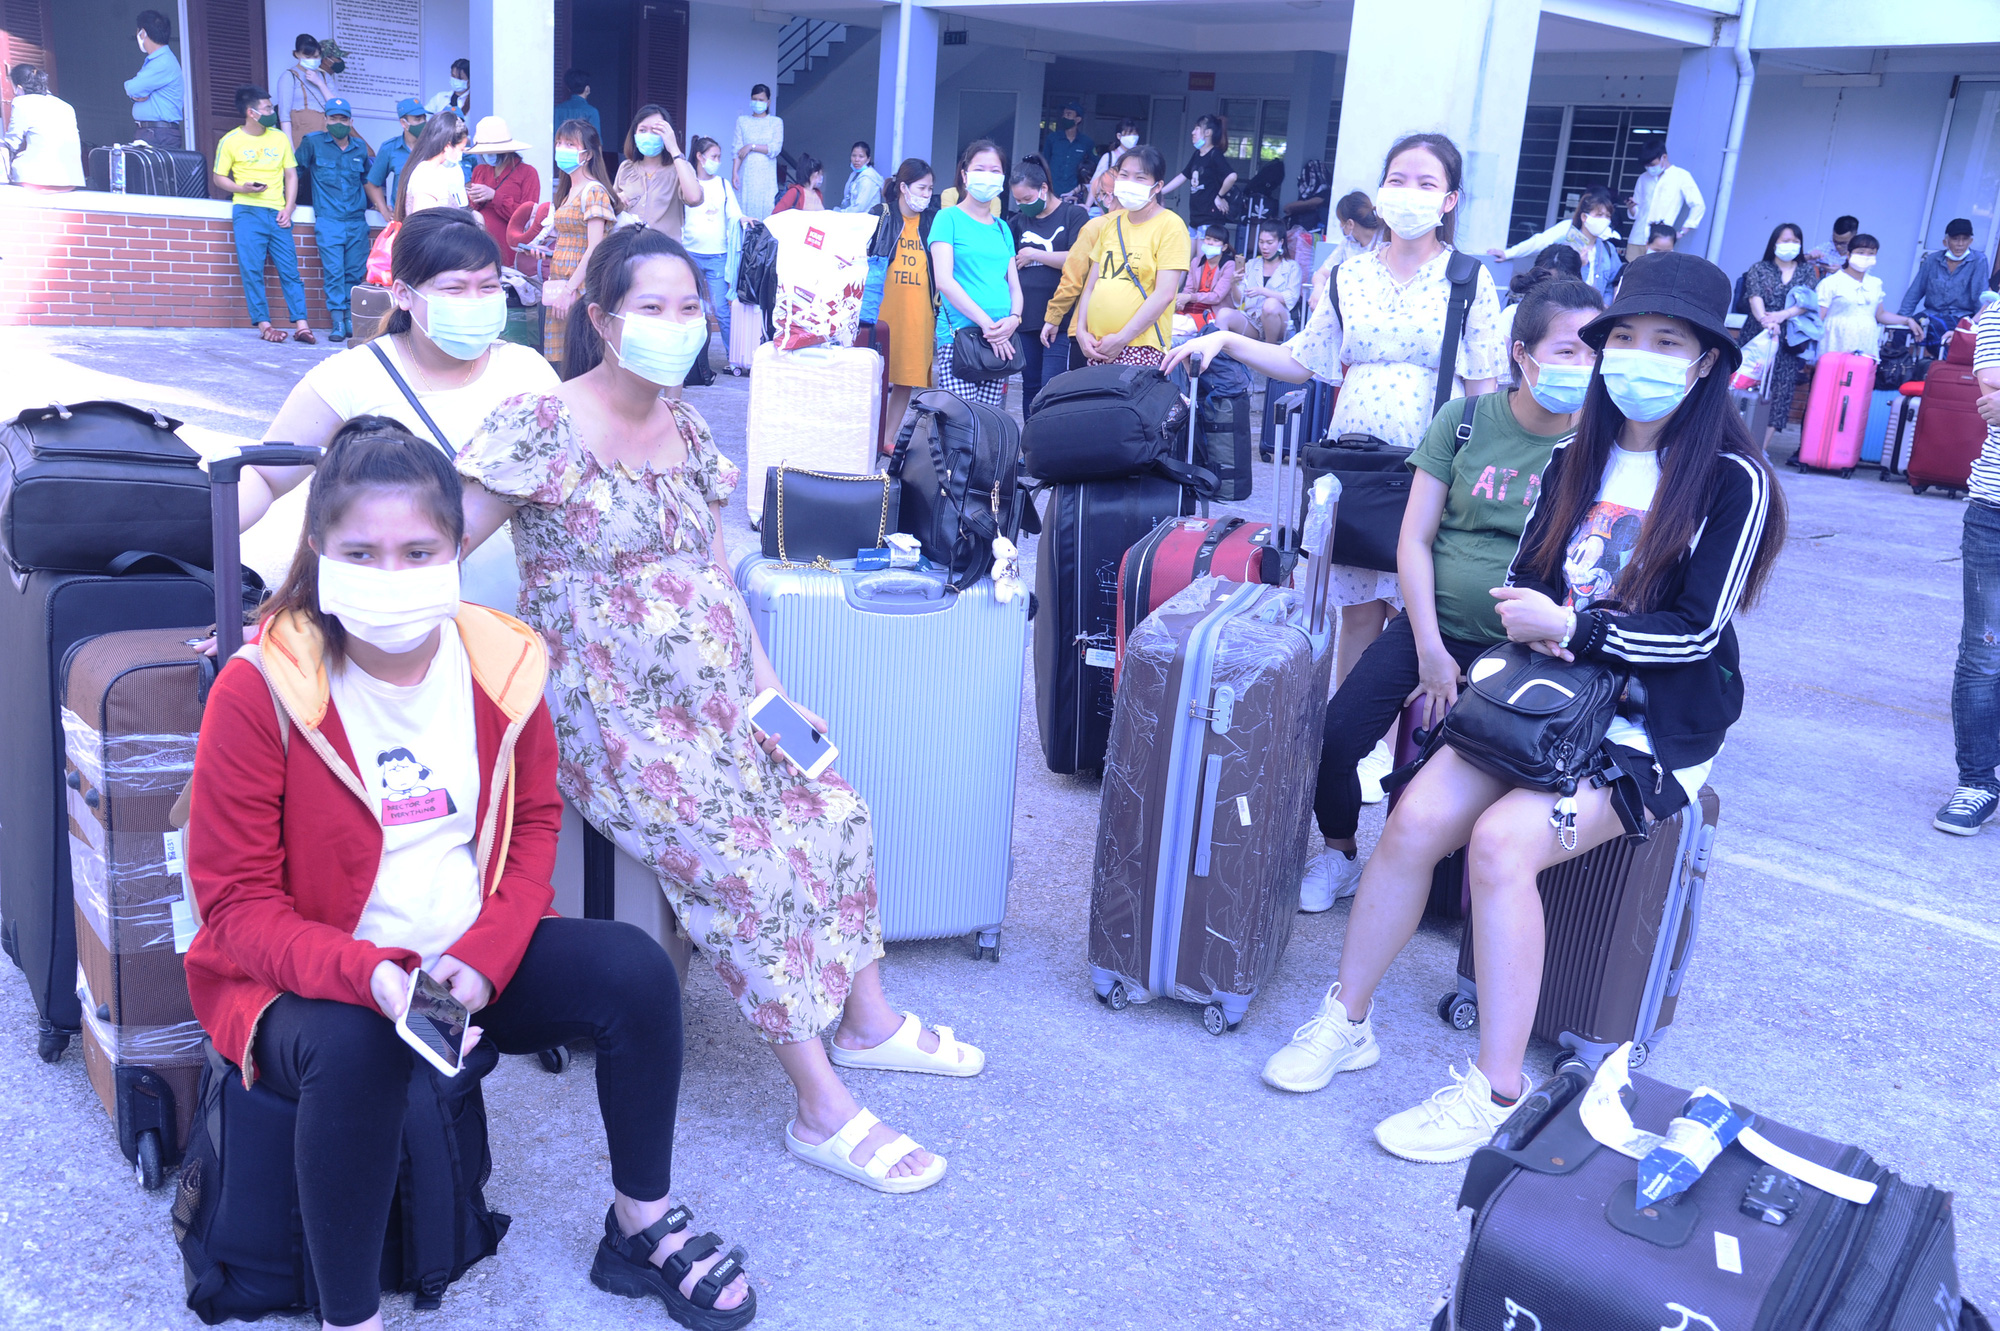 Pregnant women wait for their turn to board a bus en route to the airport after completing their mandatory novel coronavirus disease (COVID-19) quarantine at a facility in Quang Nam Province, Vietnam, June 12, 2020. Photo: Le Trung / Tuoi Tre